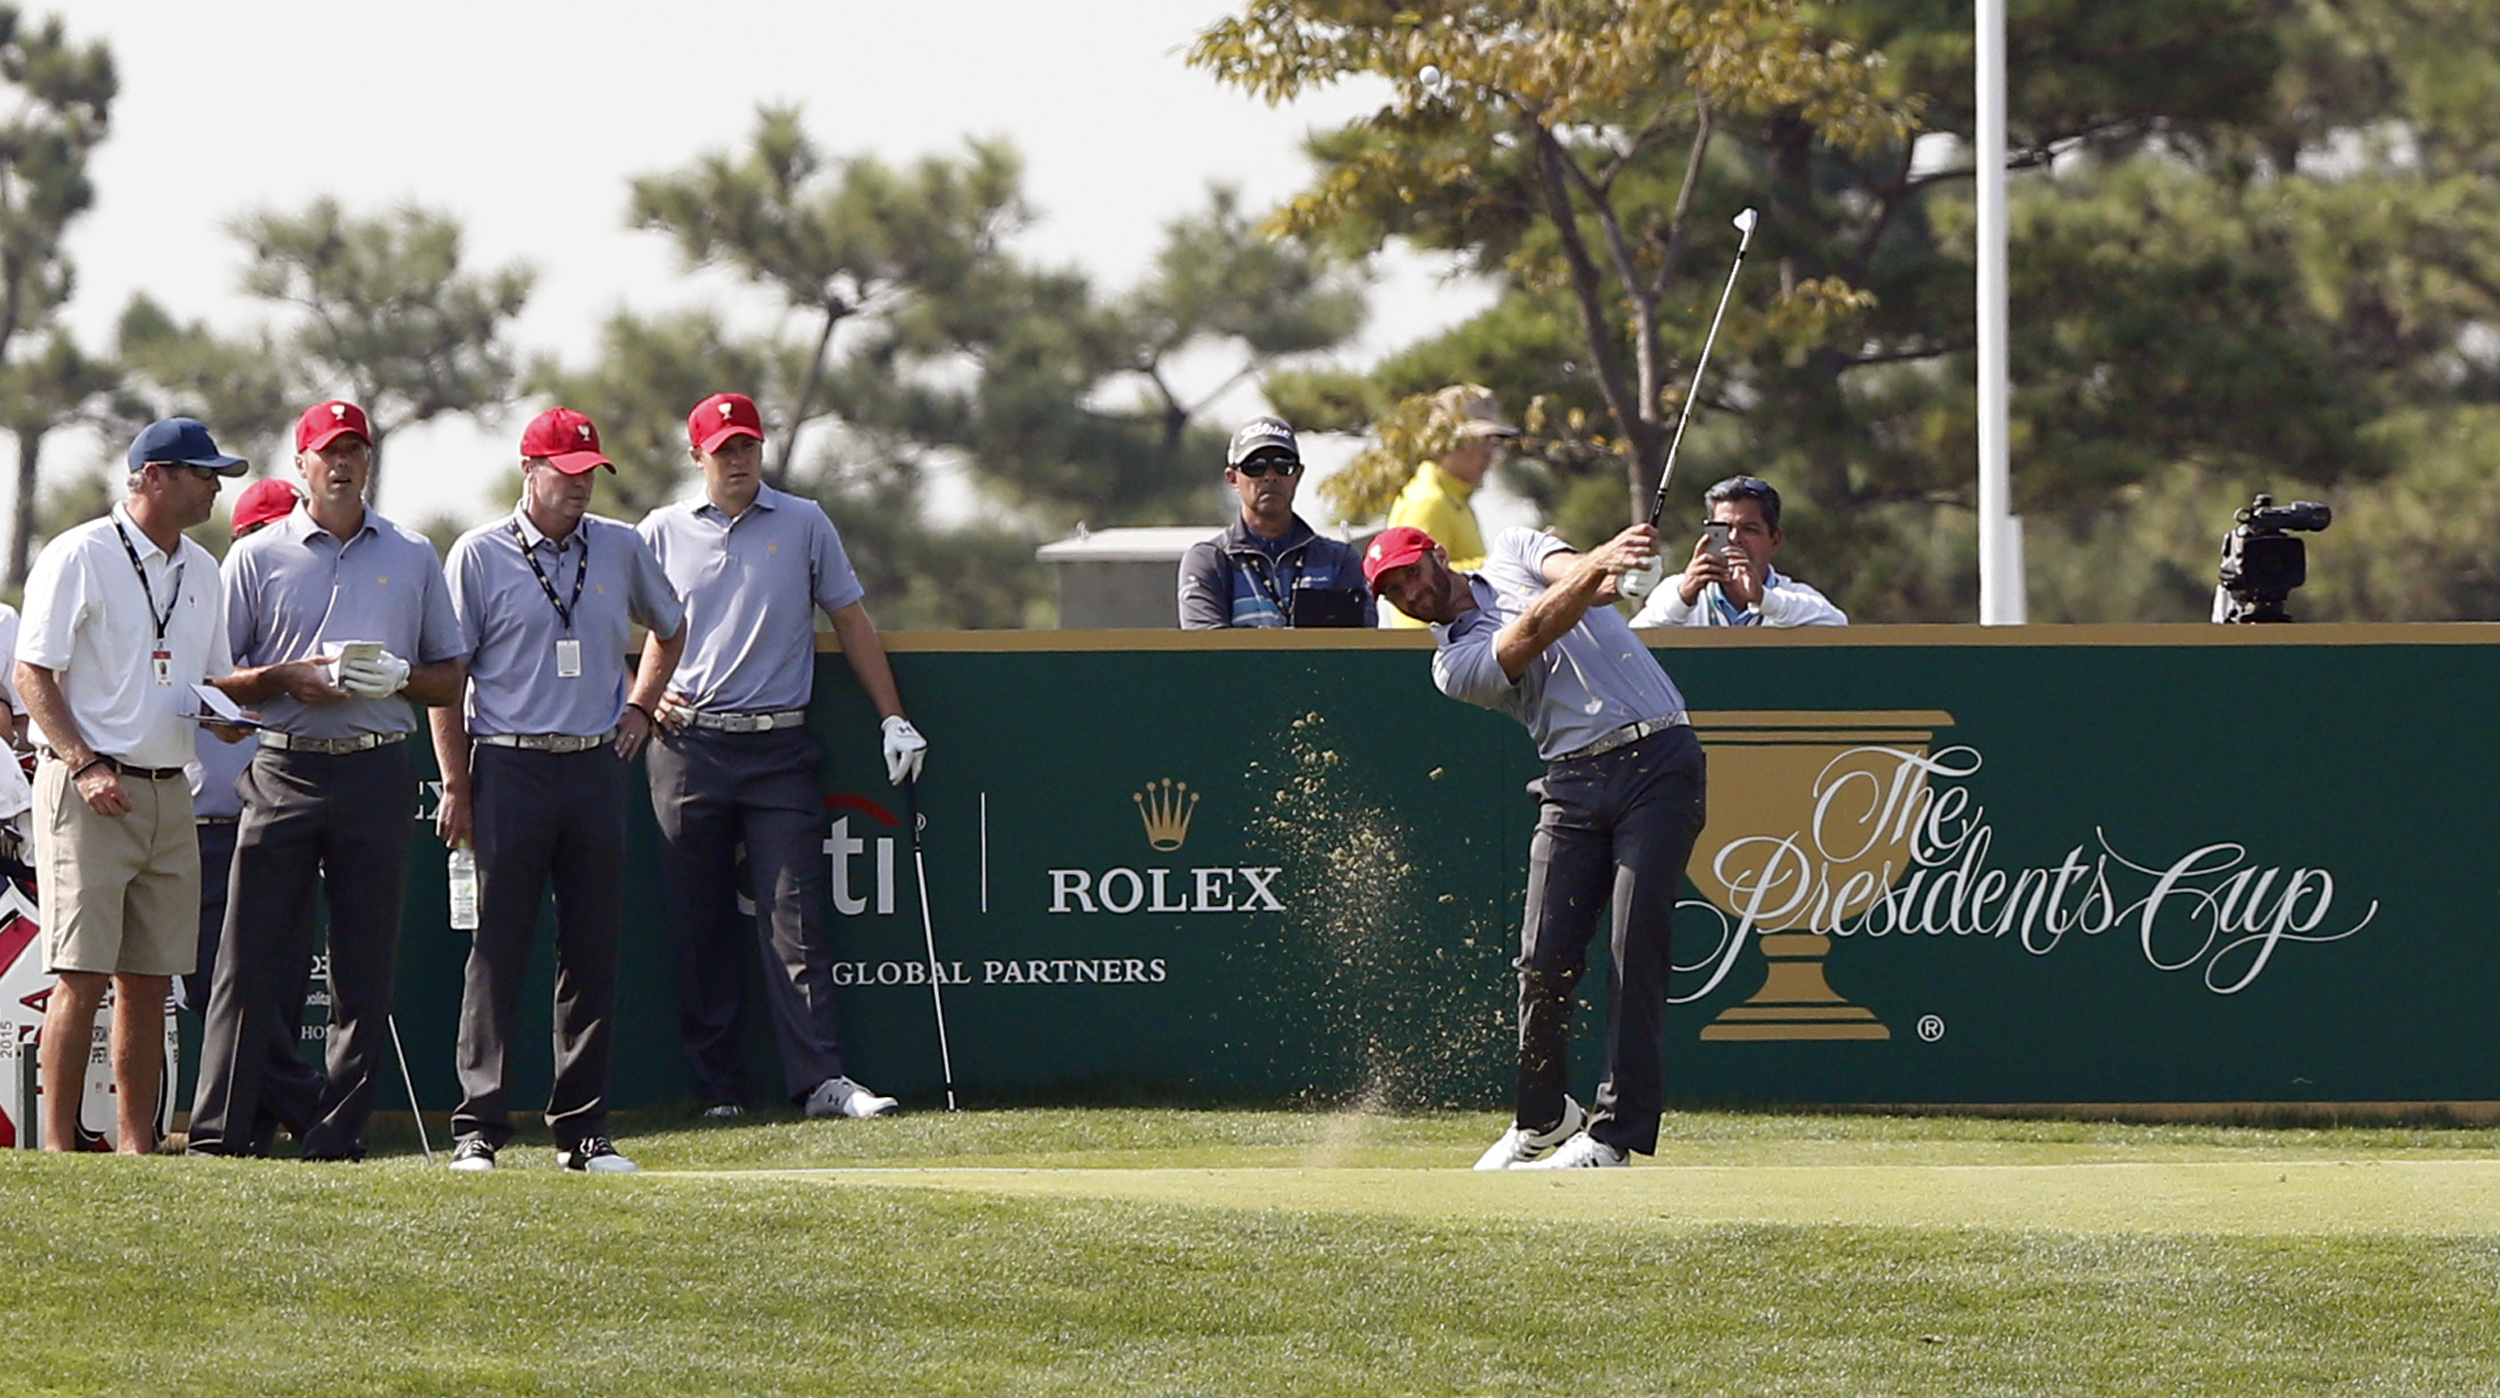 United States team player Dustin Johnson tees off as team captain's assistant Steve Stricker, third from left, and team players Matt Kuchar, second from left and Jordan Spieth watch during a practice round ahead of the Presidents Cup golf tournament at Ja